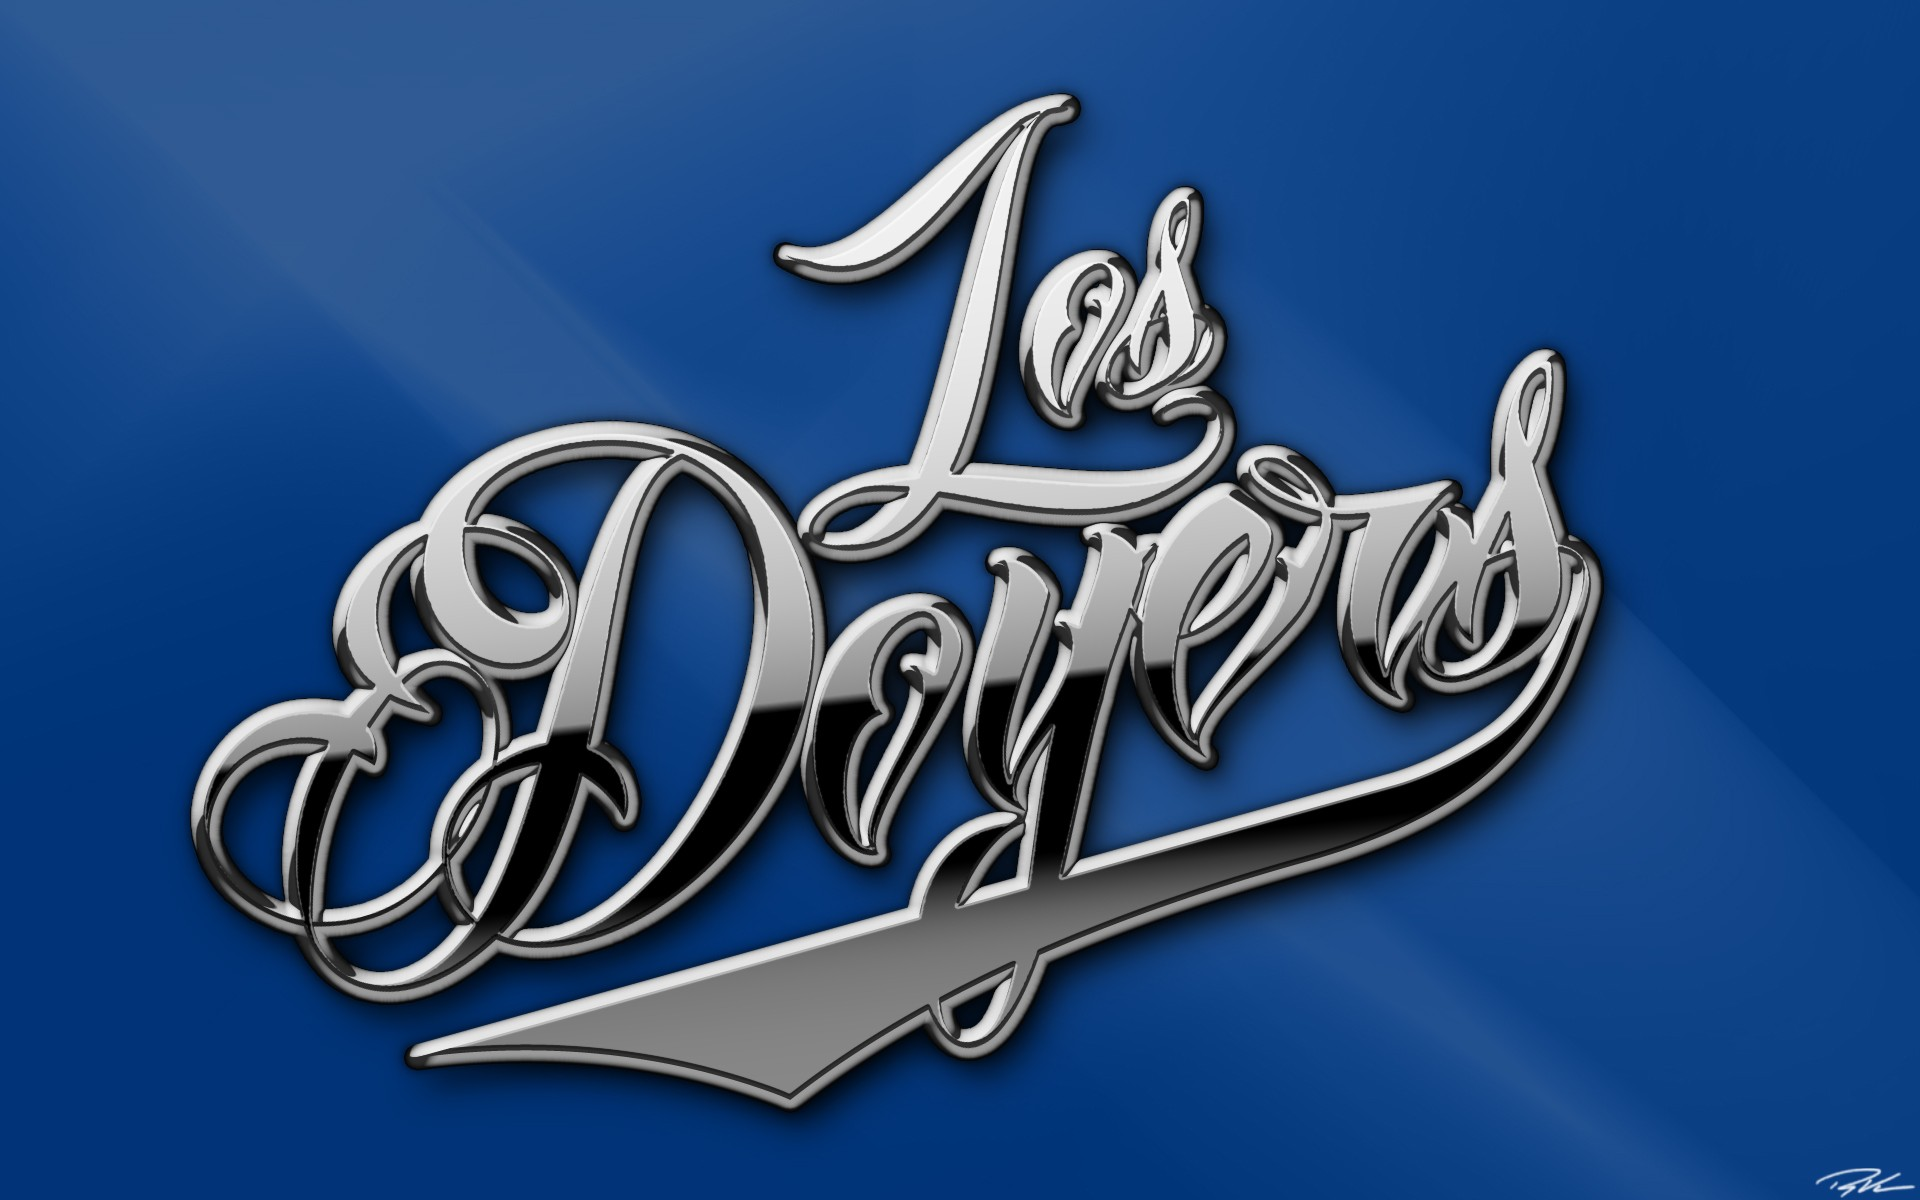 Dodgers Wallpaper Download Free Hd Backgrounds For Desktop And